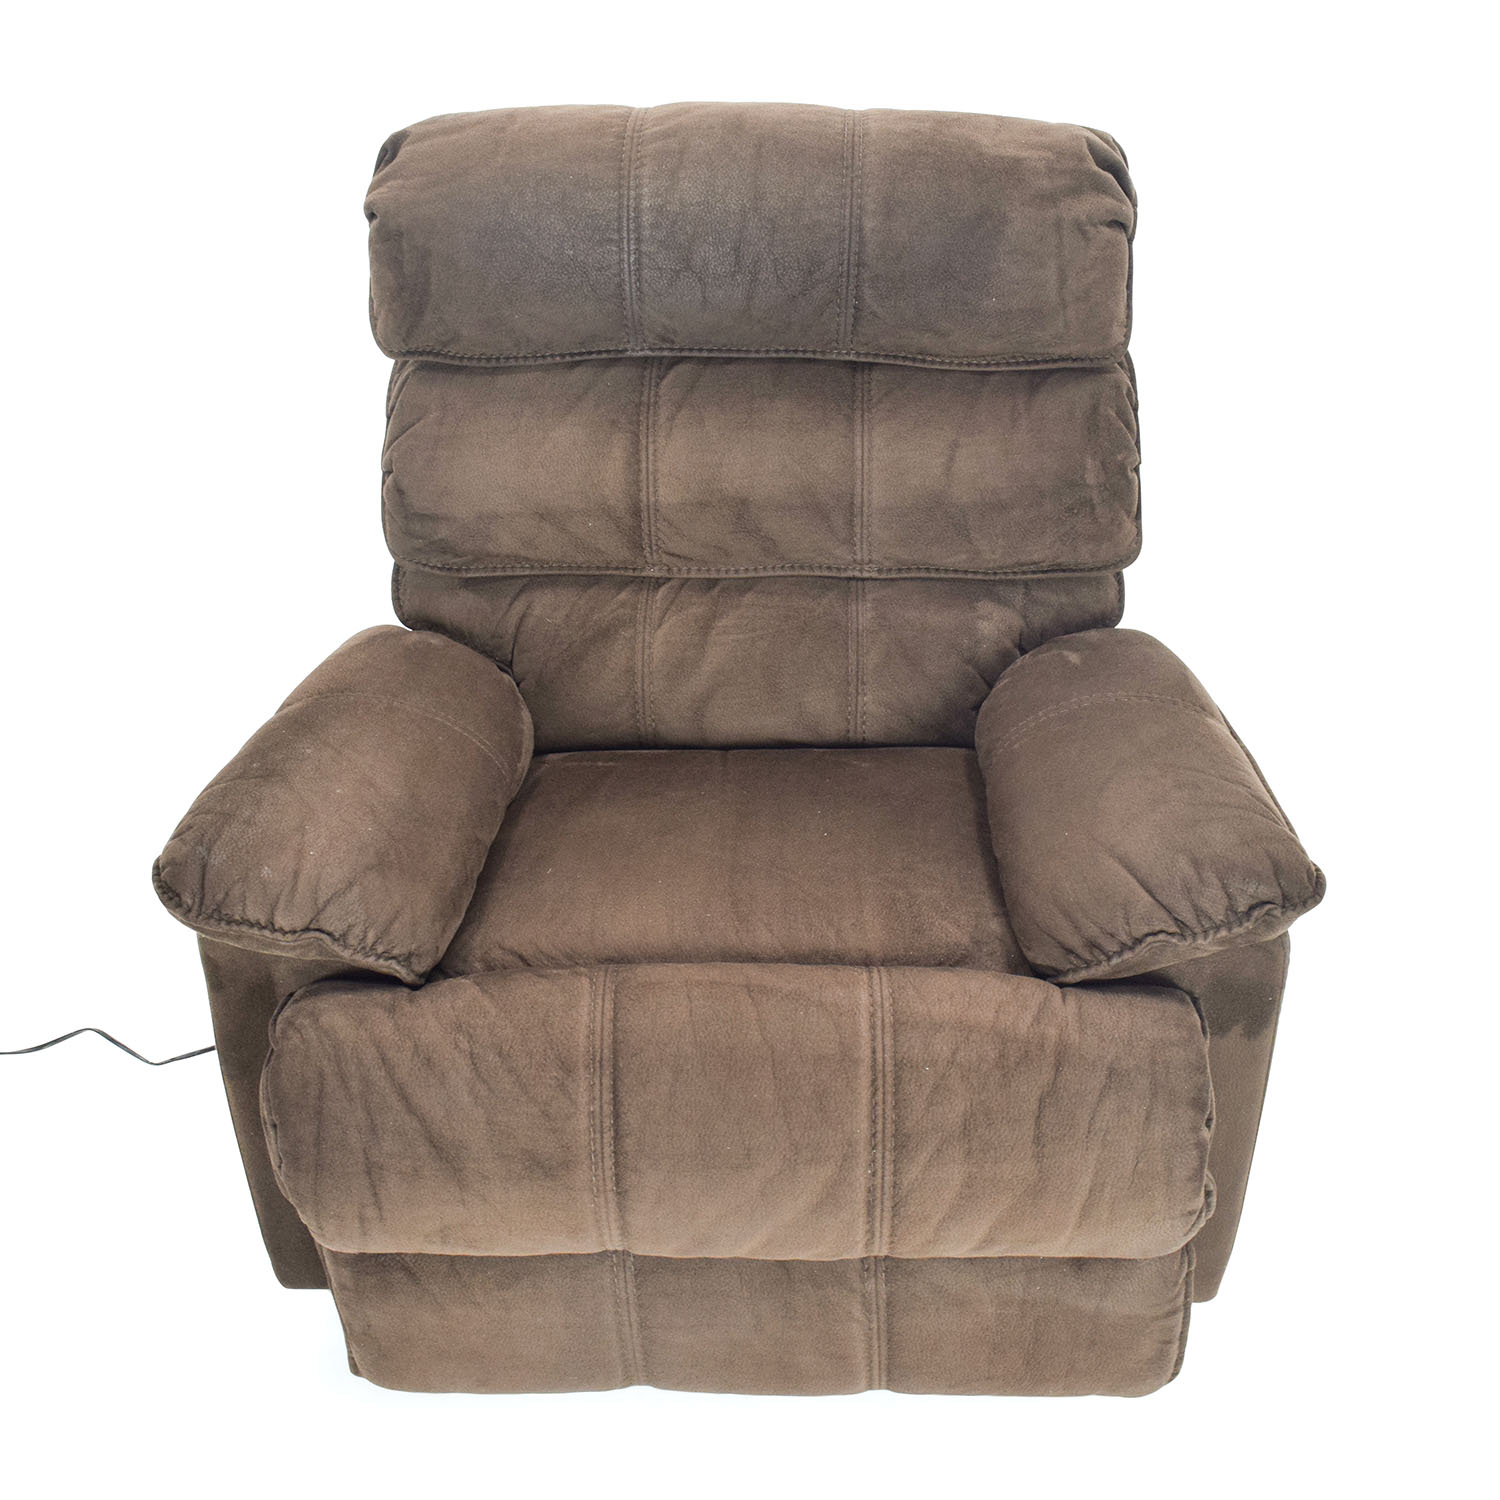 macy chairs recliners gym chair amazon used for sale